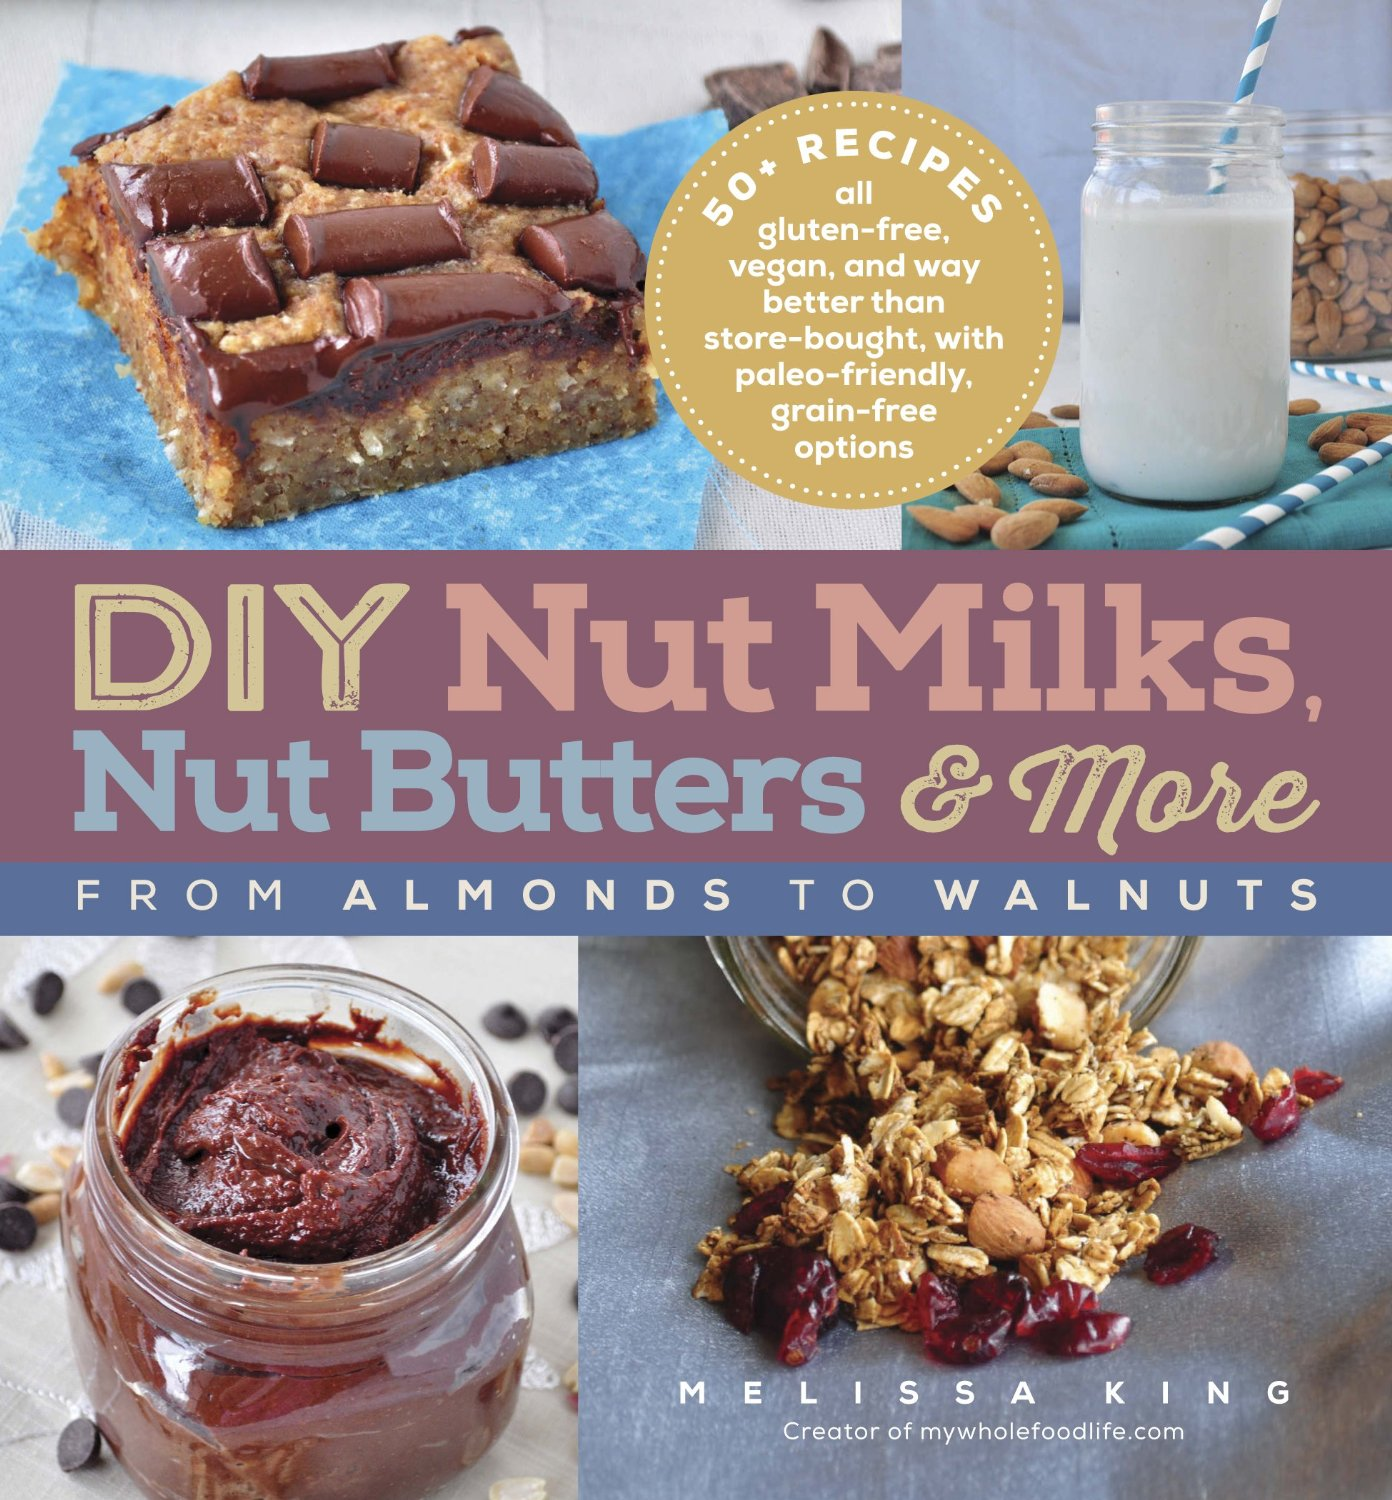 DIY Nut Milks, Nut Butters, and More: From Almonds to Walnuts free download